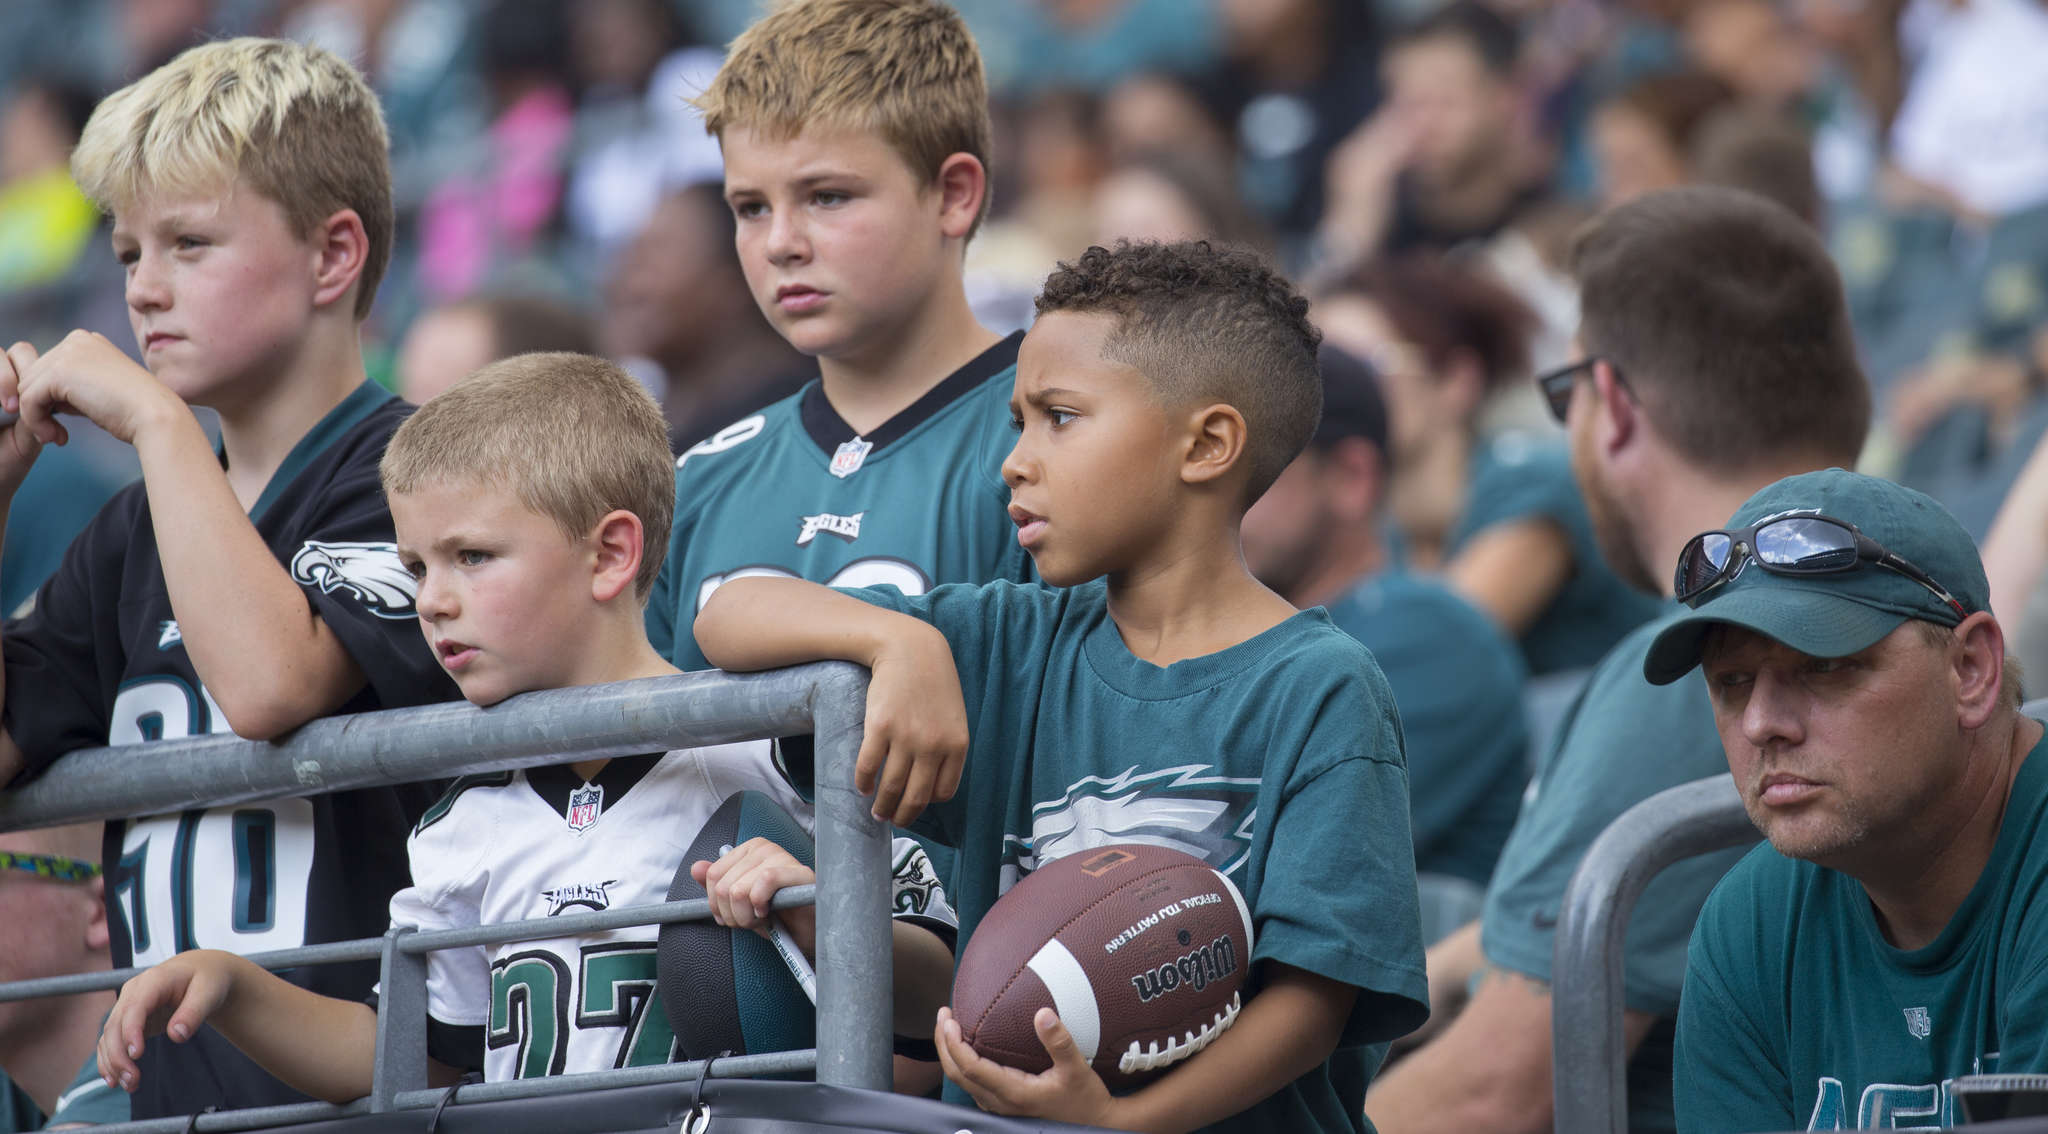 Fans make the Linc their wait room, hoping Eagles will head their way so they can get autographs at first open practice Sunday. Jessica Griffin / STAFF PHOTOGRAPHER